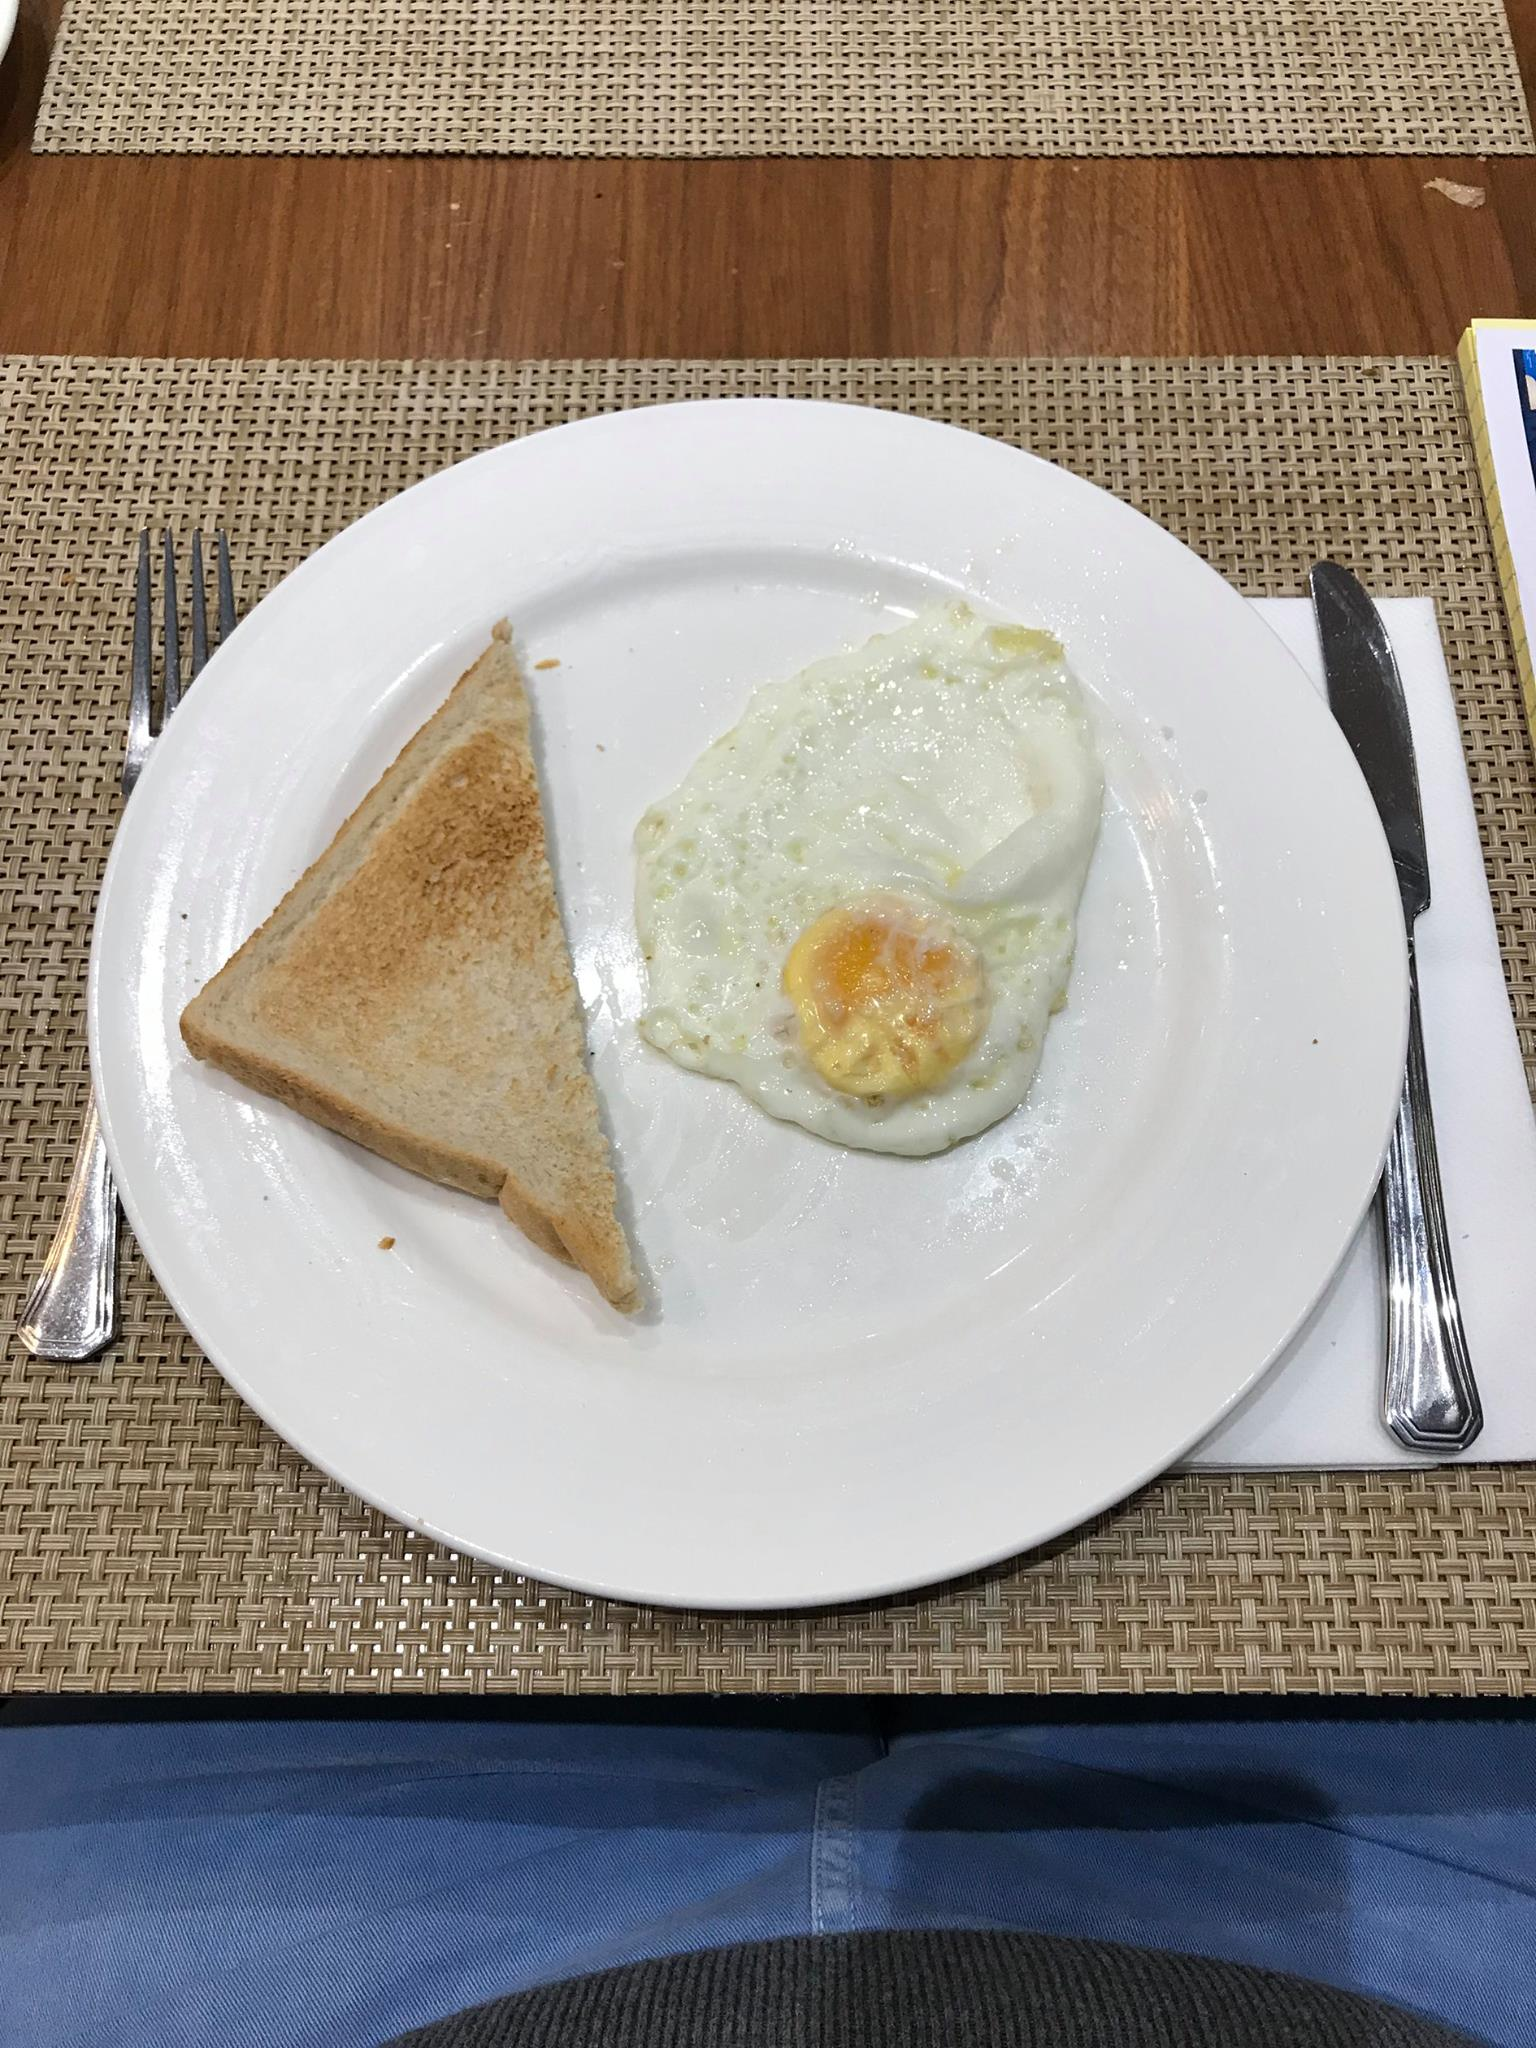 Photograph of breakfast, egg and toast